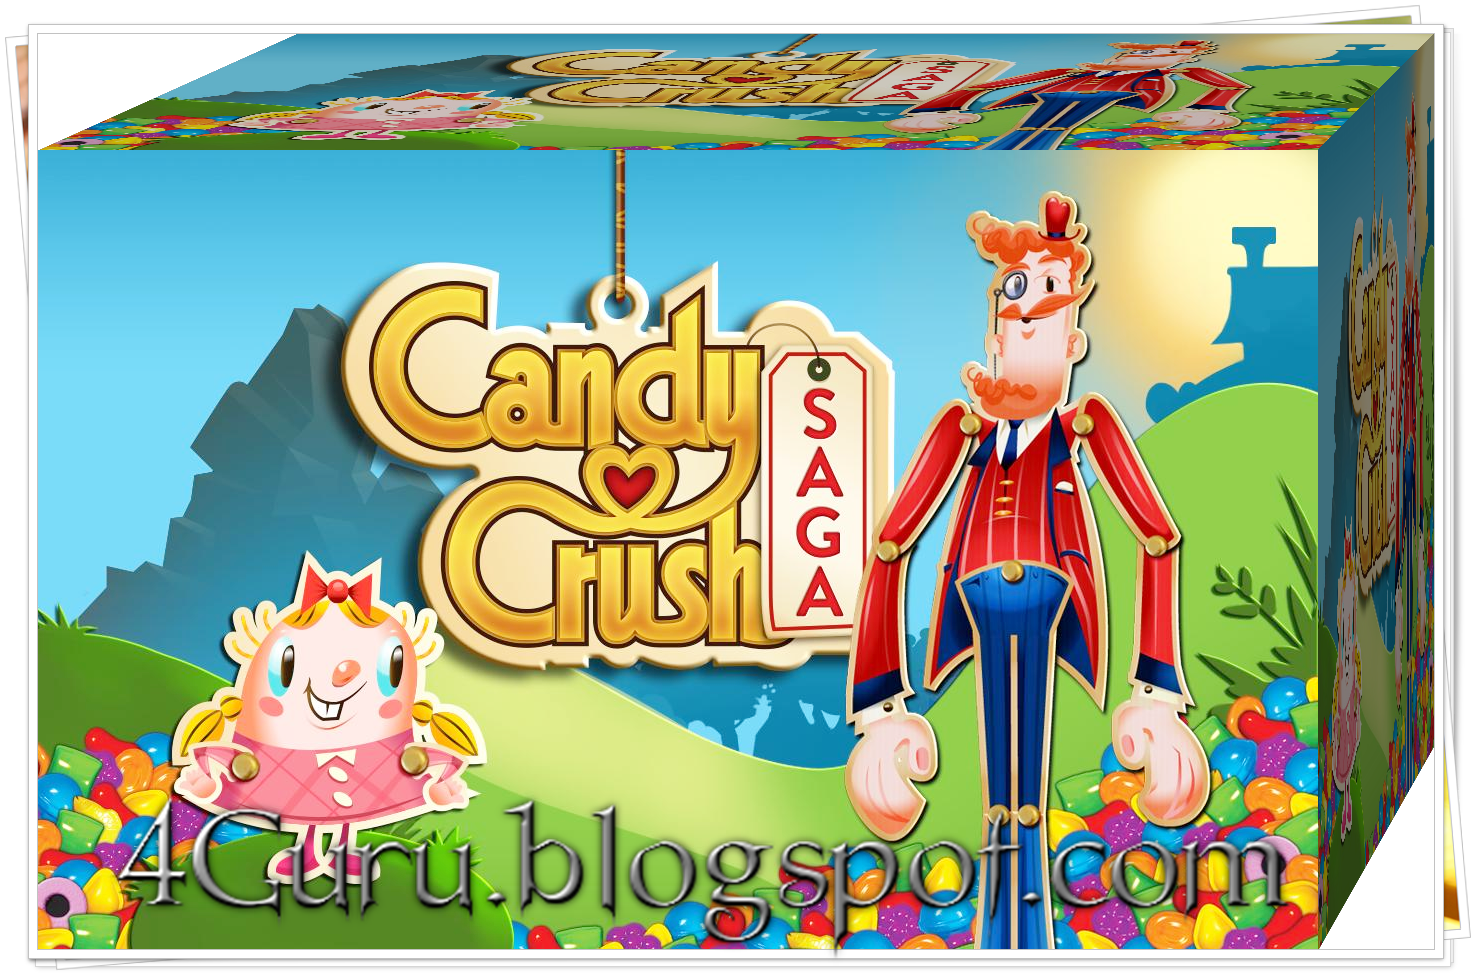 Candy Crush Saga for Android 1.28.0 APK FRee Download